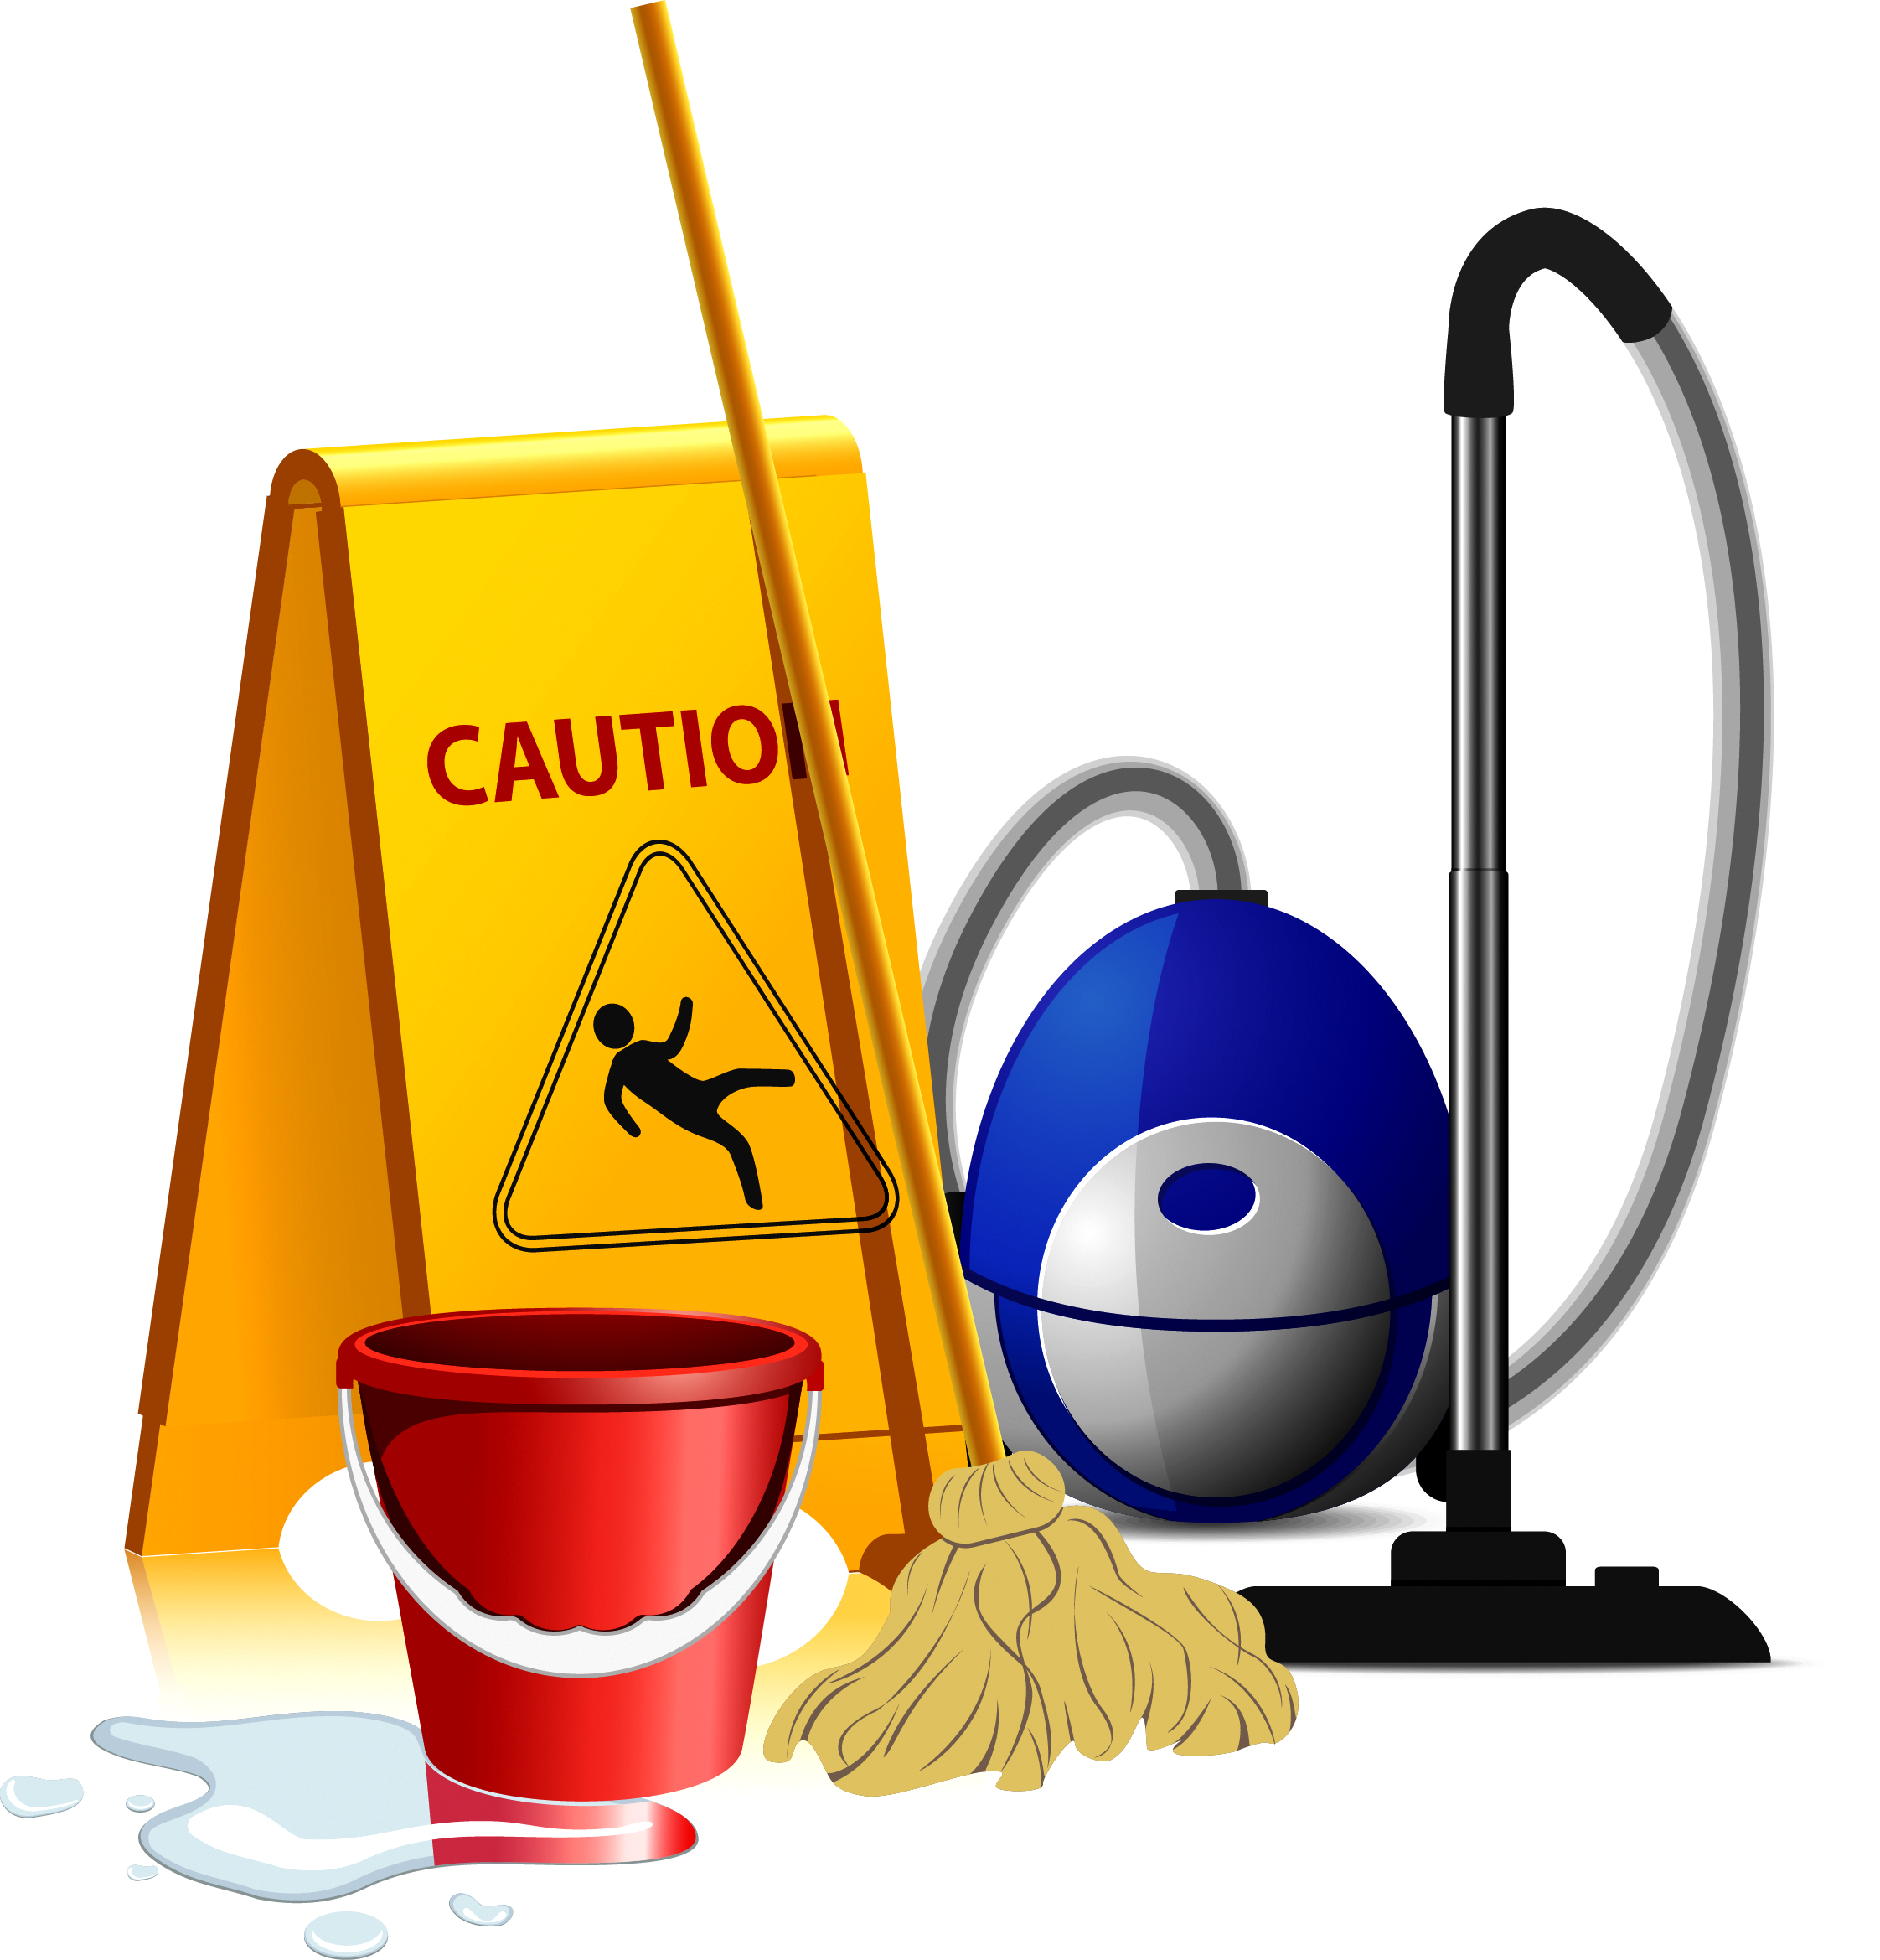 Clean clipart clean floor. Cleaning cleaner tool tools